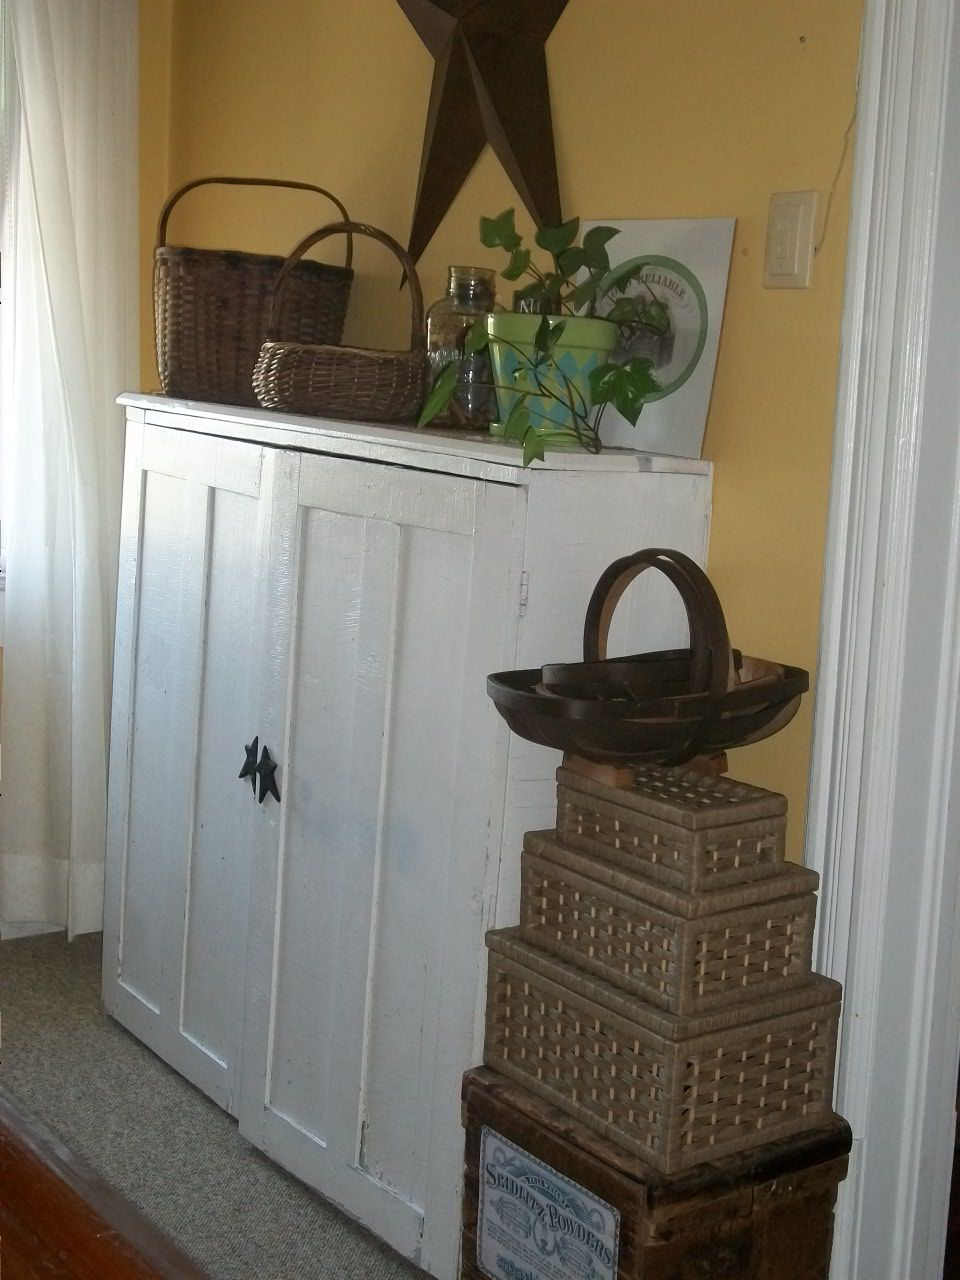 Best Kitchen Gallery: Best Idea Yet For Reusing Old Kitchen Cabi S Use This Idea For of Reuse Kitchen Cabinets on cal-ite.com